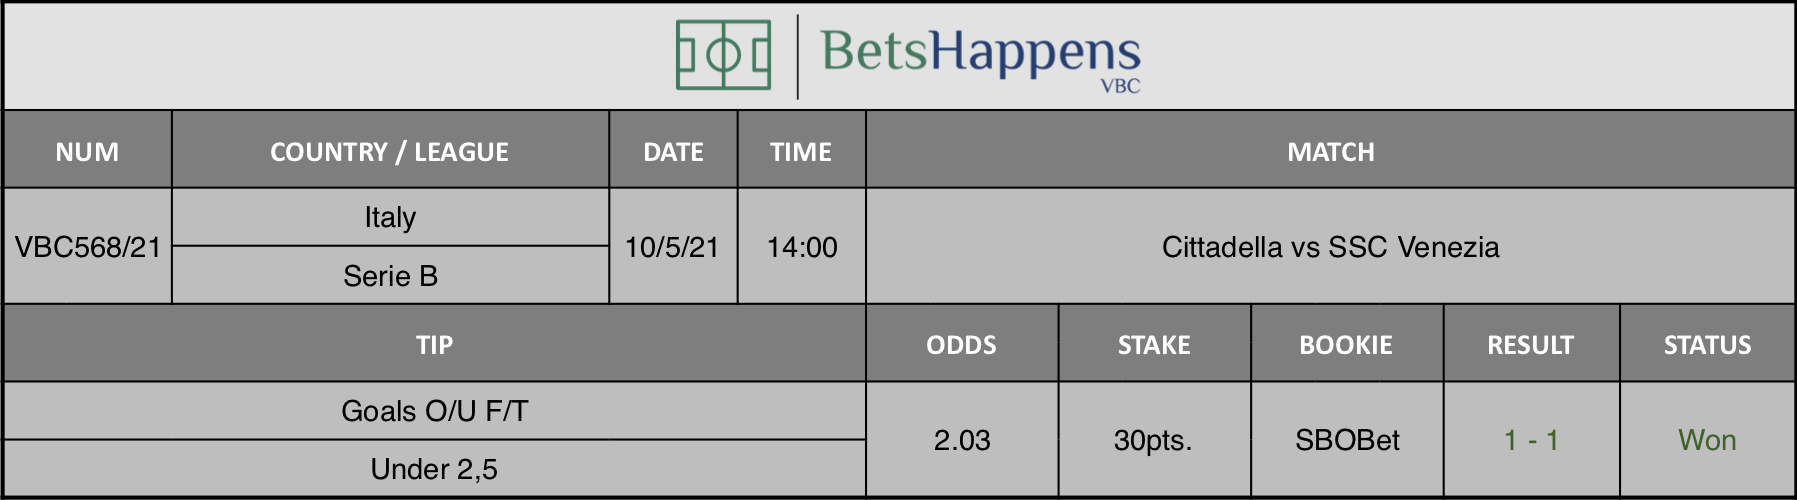 Results of our tip for the Cittadella vs SSC Venezia match where Goals O/U F/T Under 2,75 is recommended.